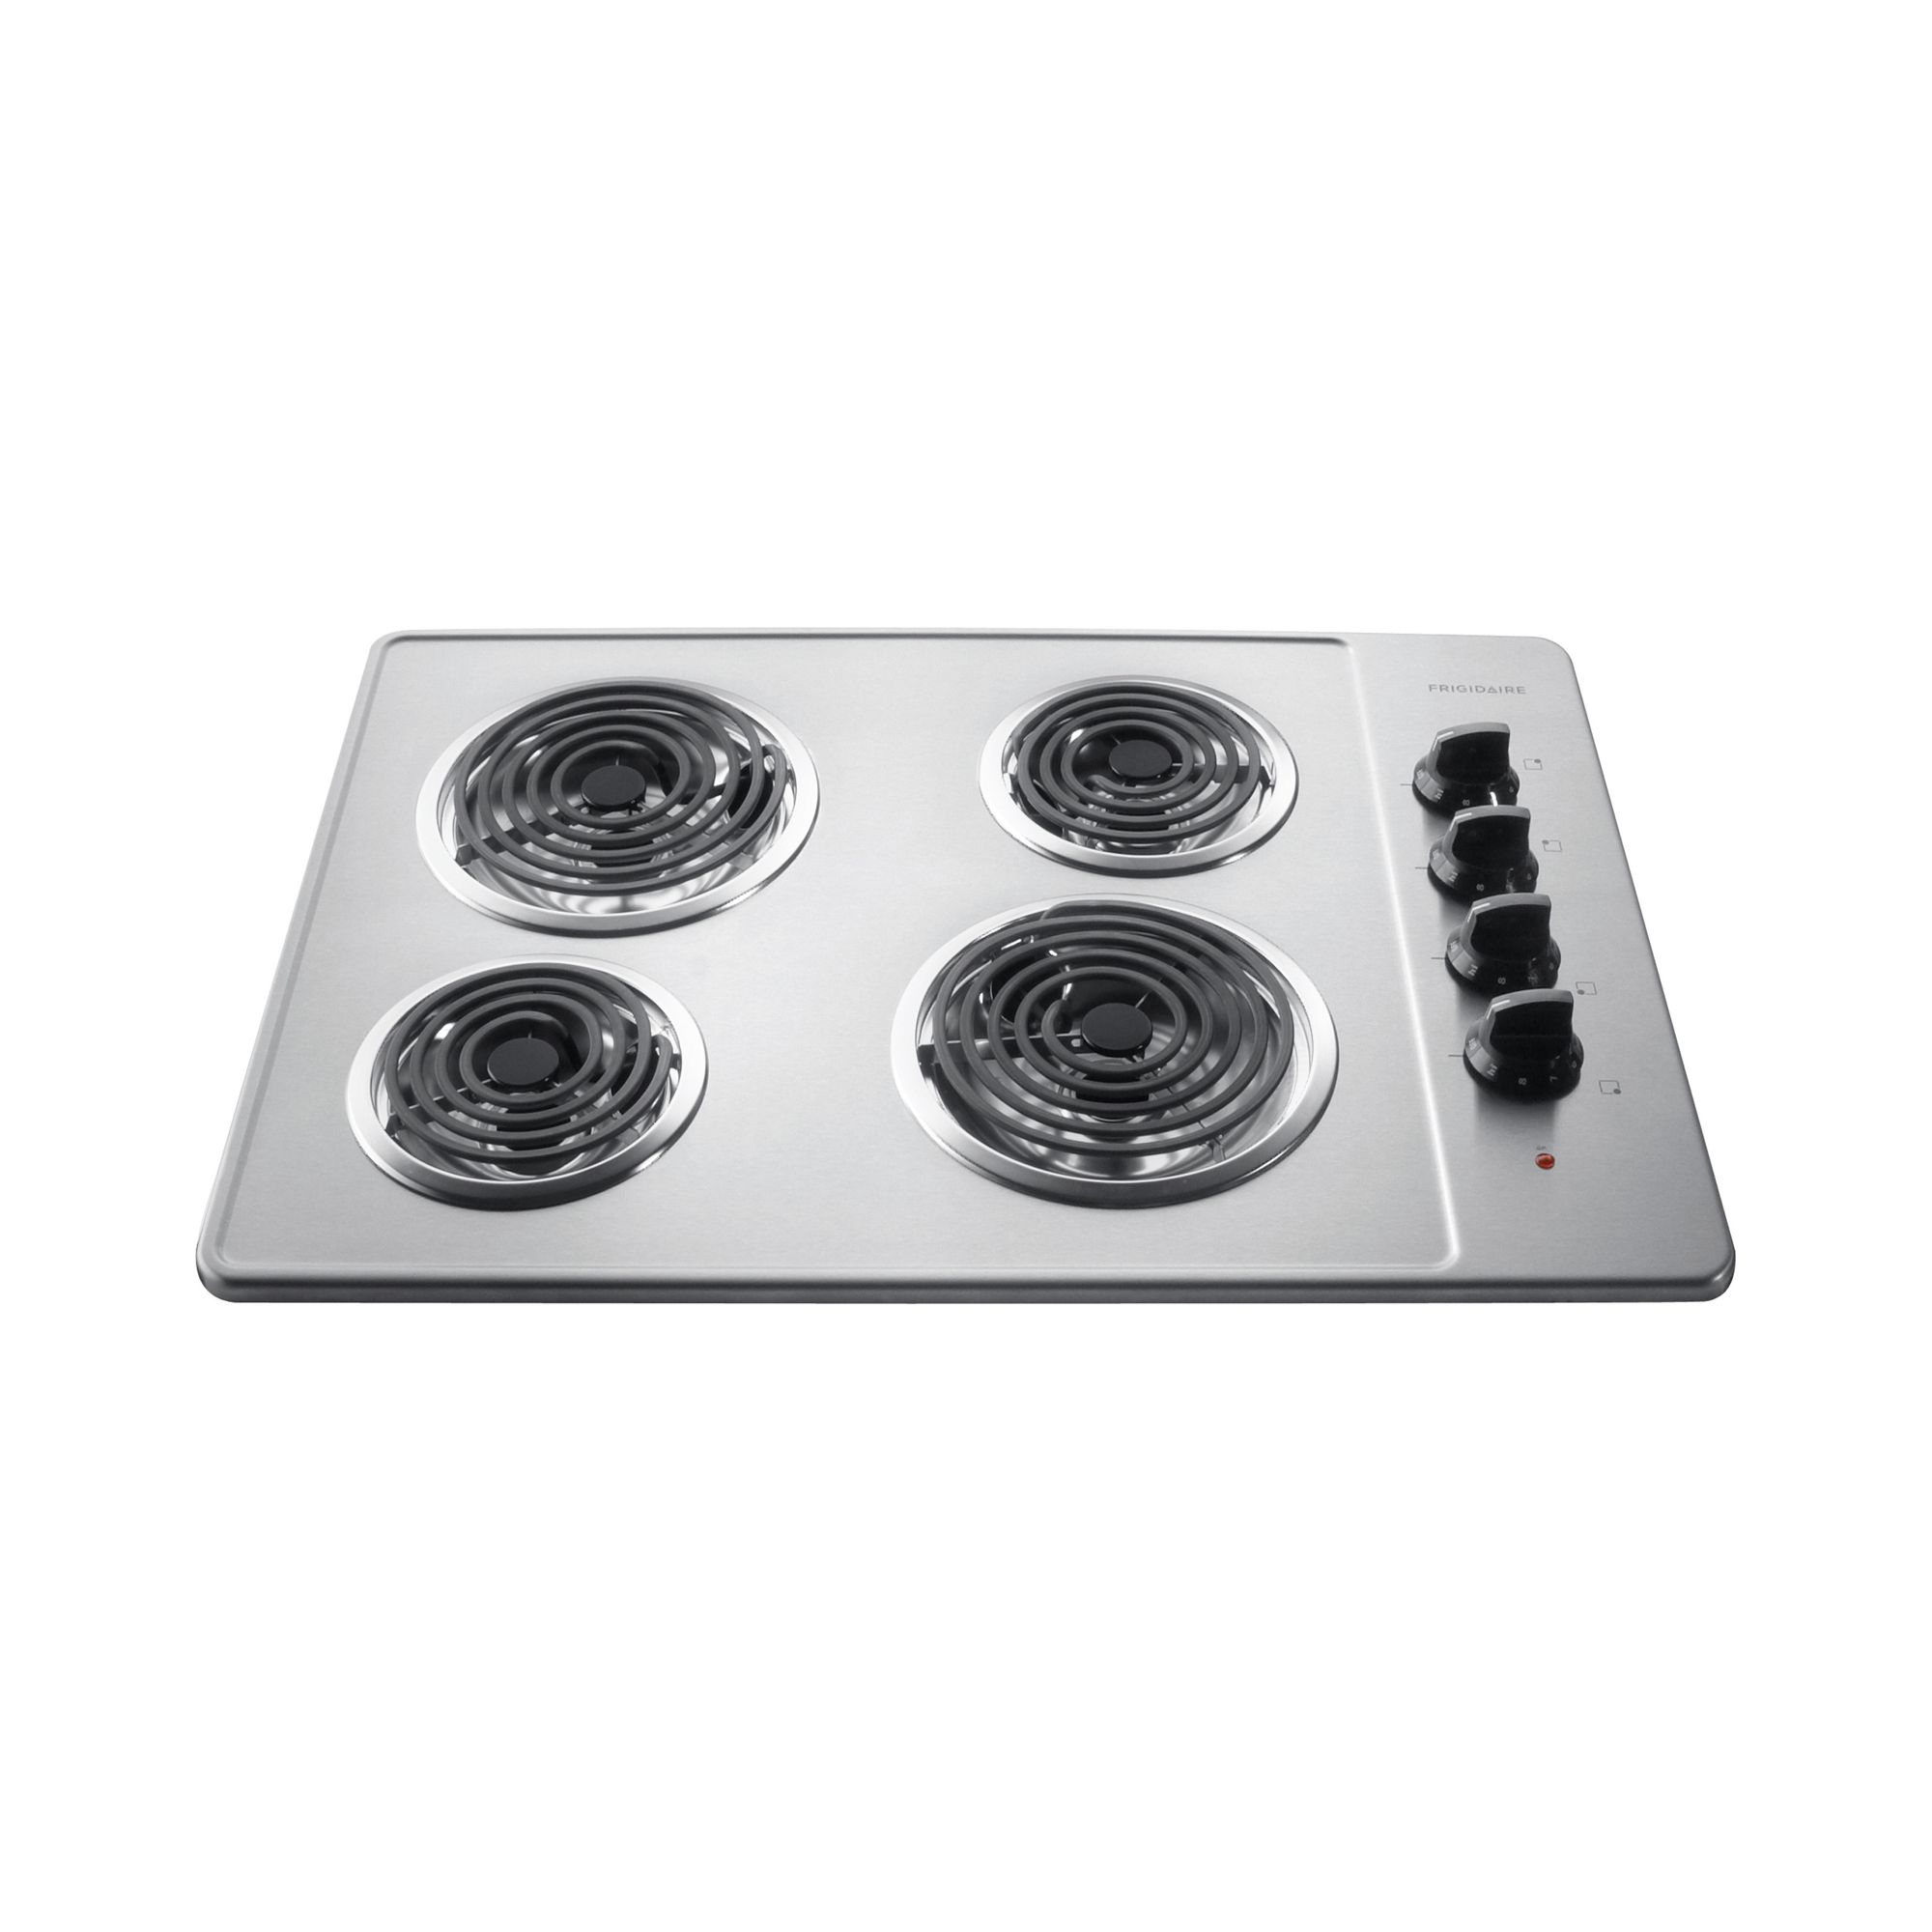 "Frigidaire FFEC3005LS 30"" Electric Cooktop with Coil Elements"